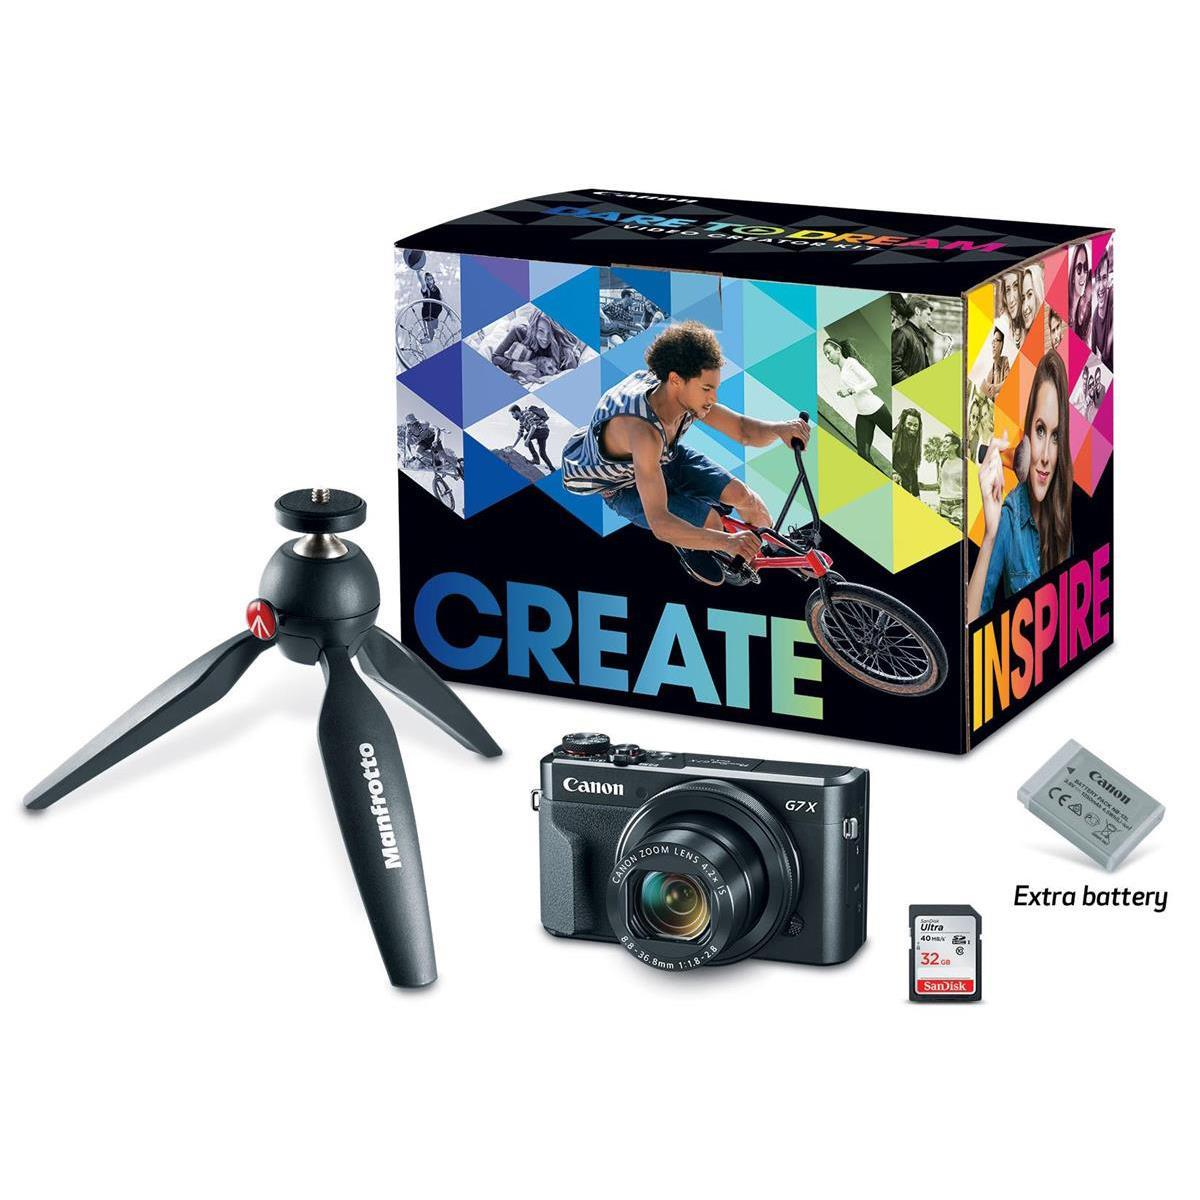 Canon G7 X Mark II Camera + 1TB Canon Connect Station CS100 + Pro-100 Printer & More $729 after $350 rebate + free s.h